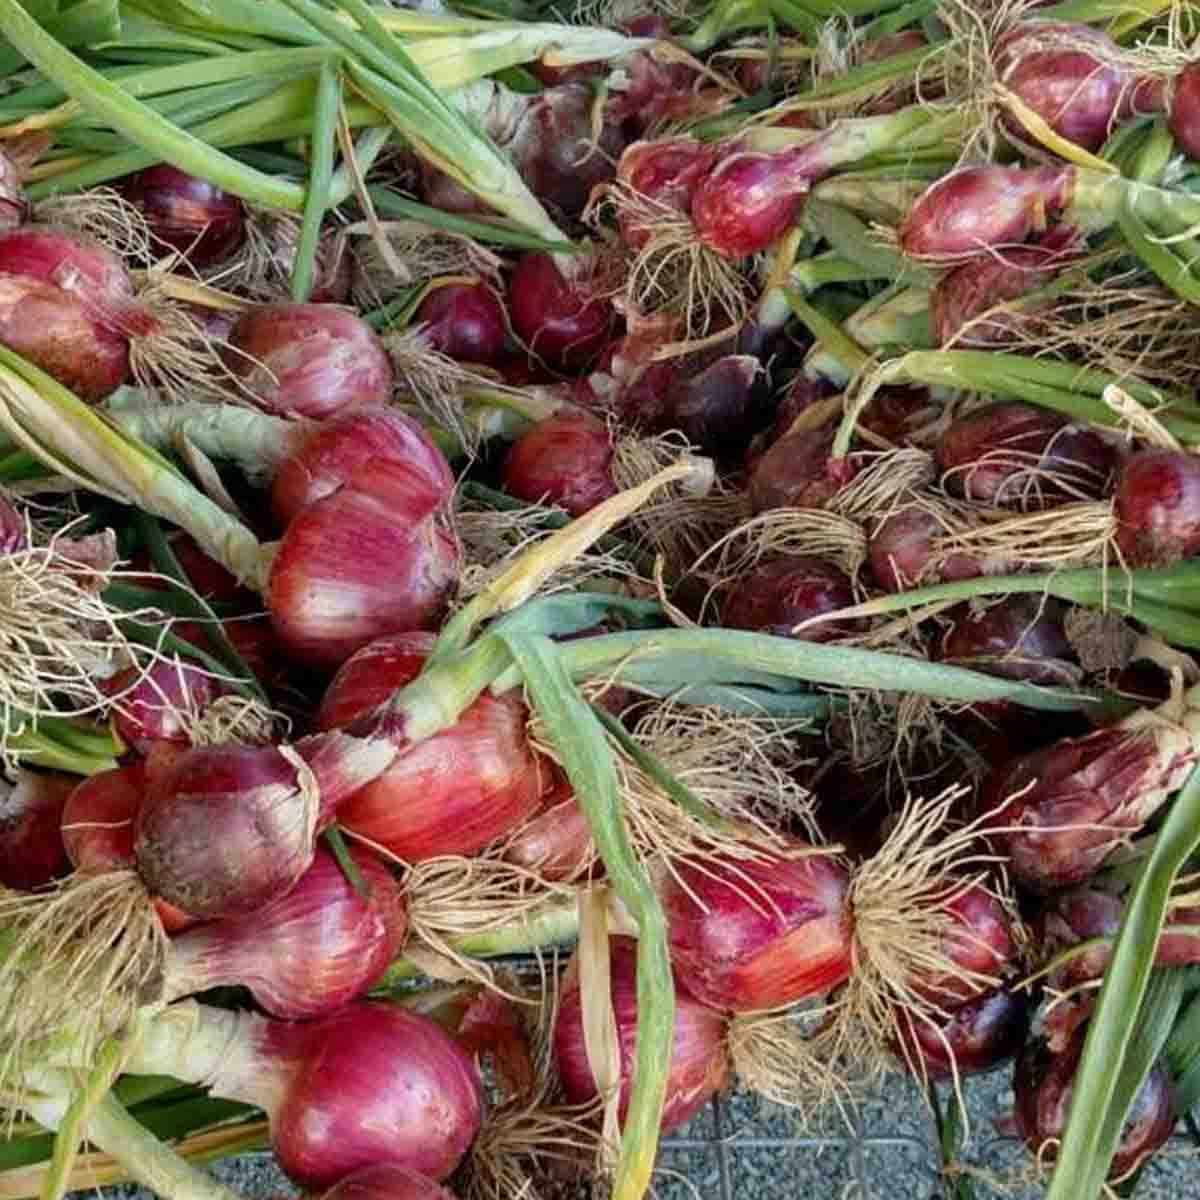 A huge bin of harvested onions